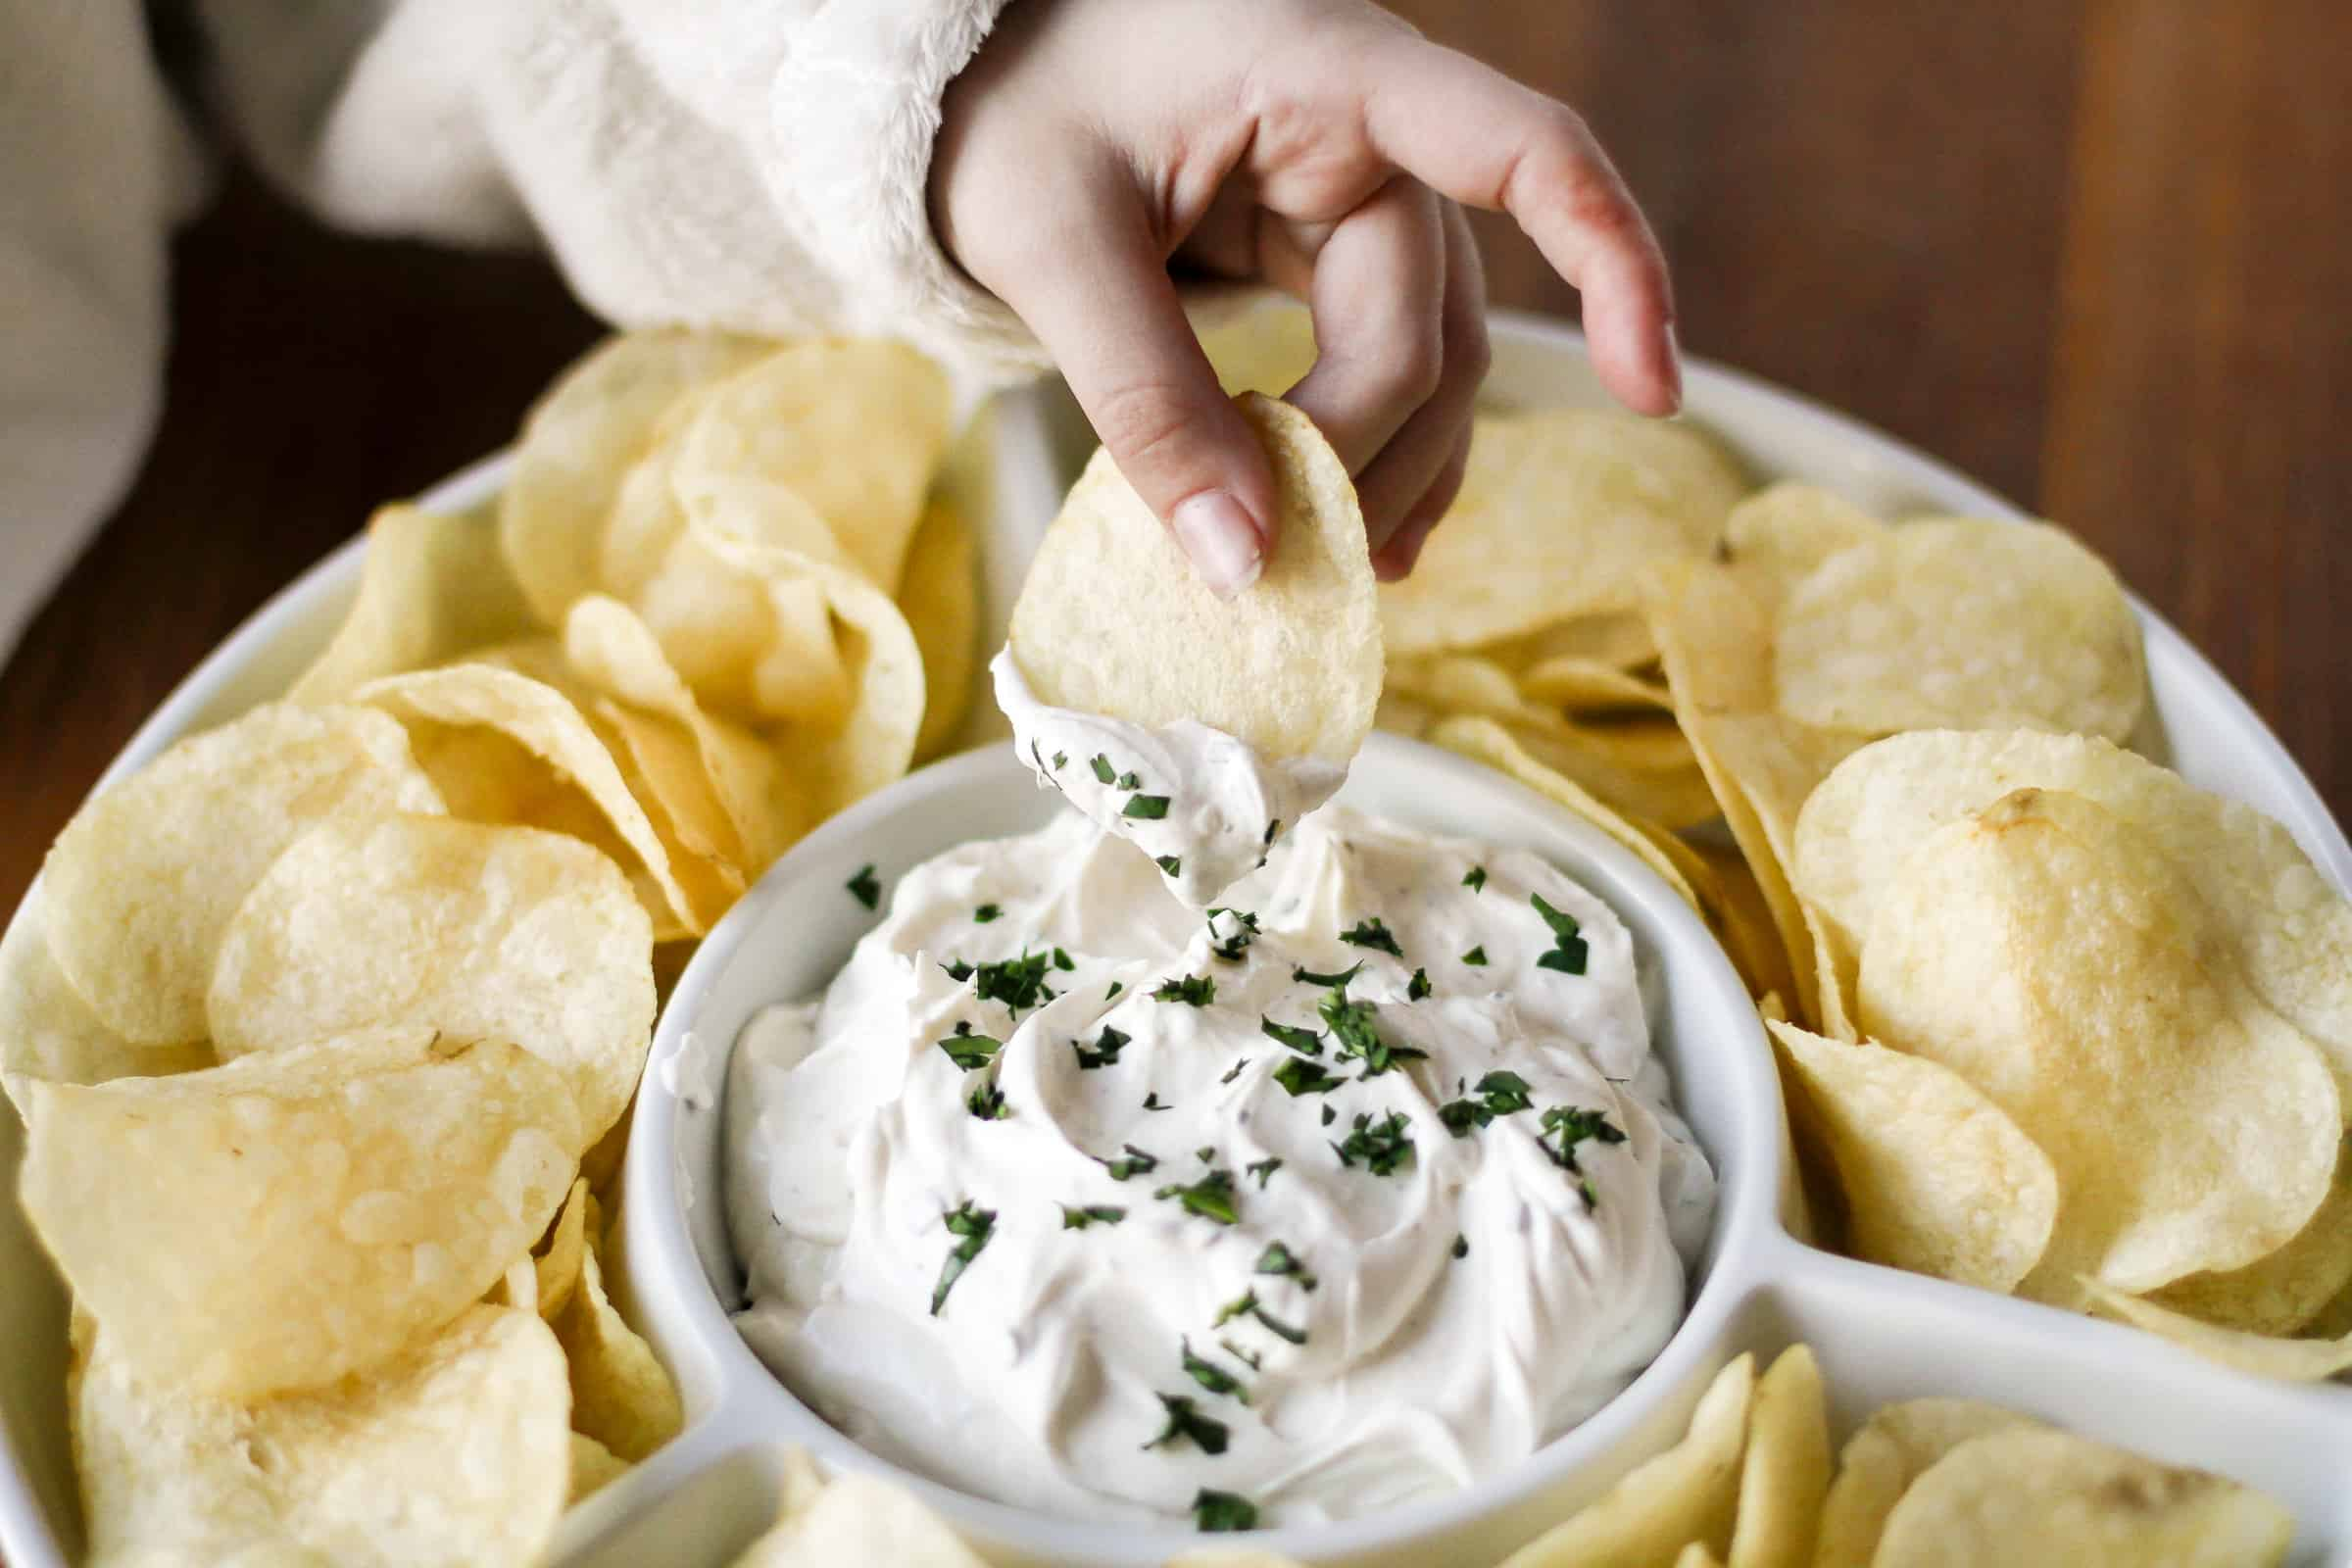 3-Ingredient Chip Dip Recipe -- If you're a chips and dip junkie, you're going to LOVE this out-of-this-world 3-ingredient chip dip recipe... Perfect for tailgating and more! | via @unsophisticook on unsophisticook.com